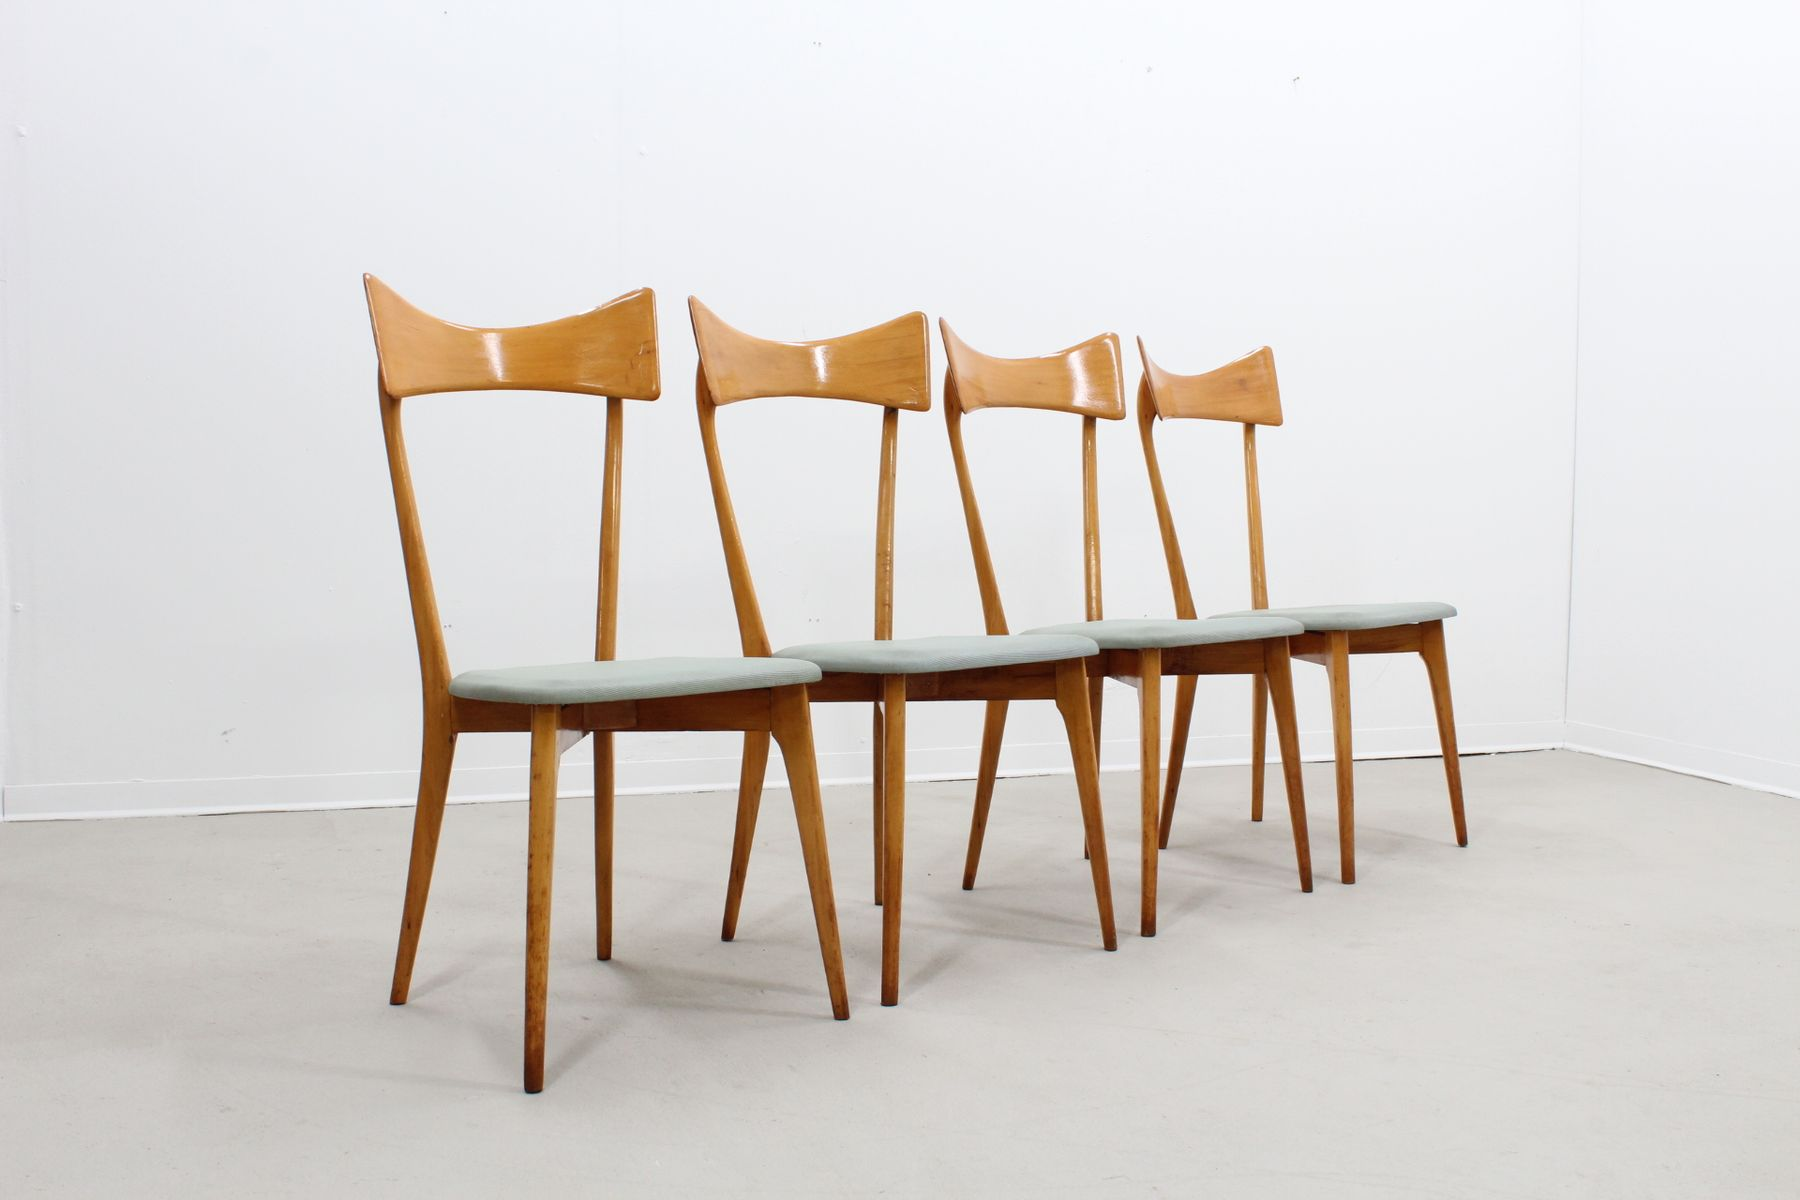 Mid Century Dining Chairs By Ico Parisi, Set Of 4